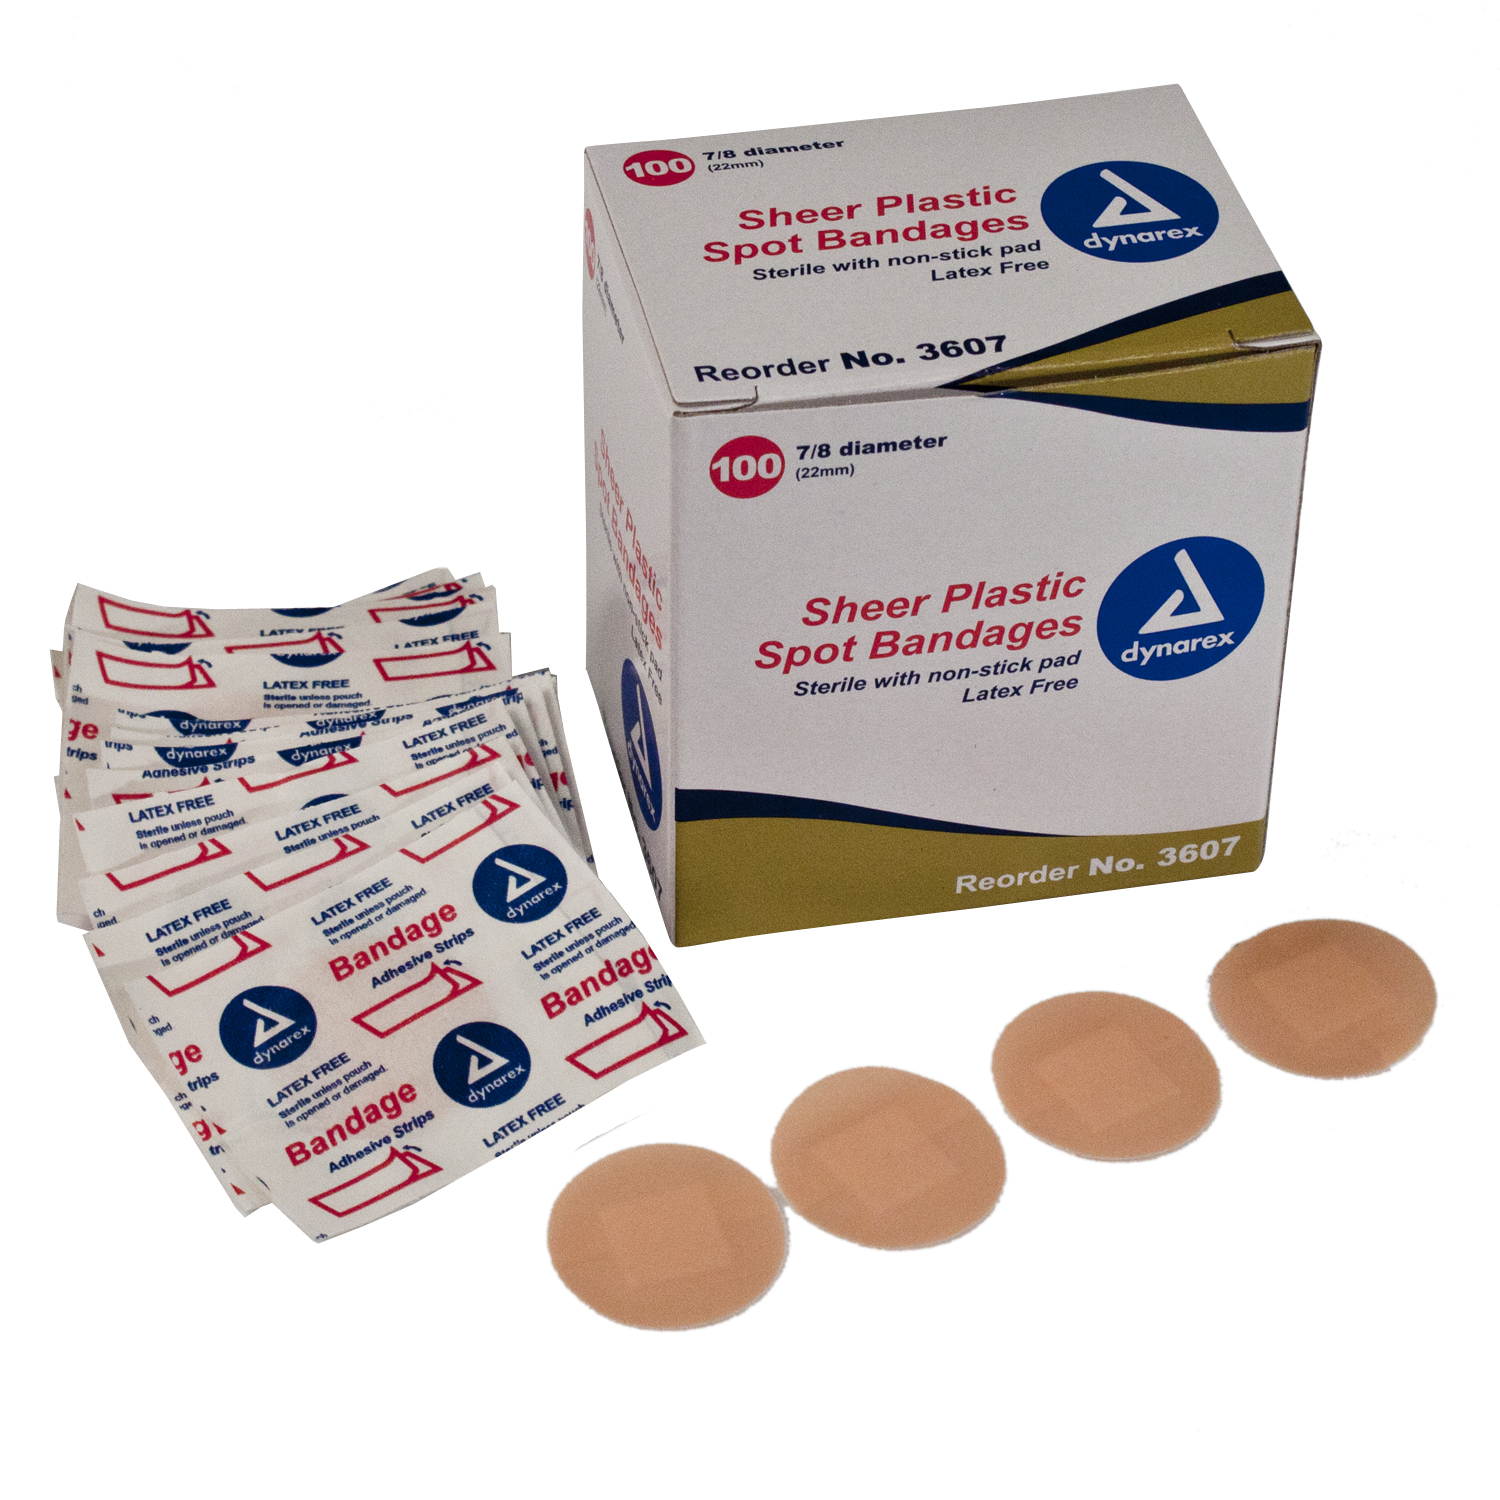 Sheer Plastic Spot Bandages (Box of 100) image